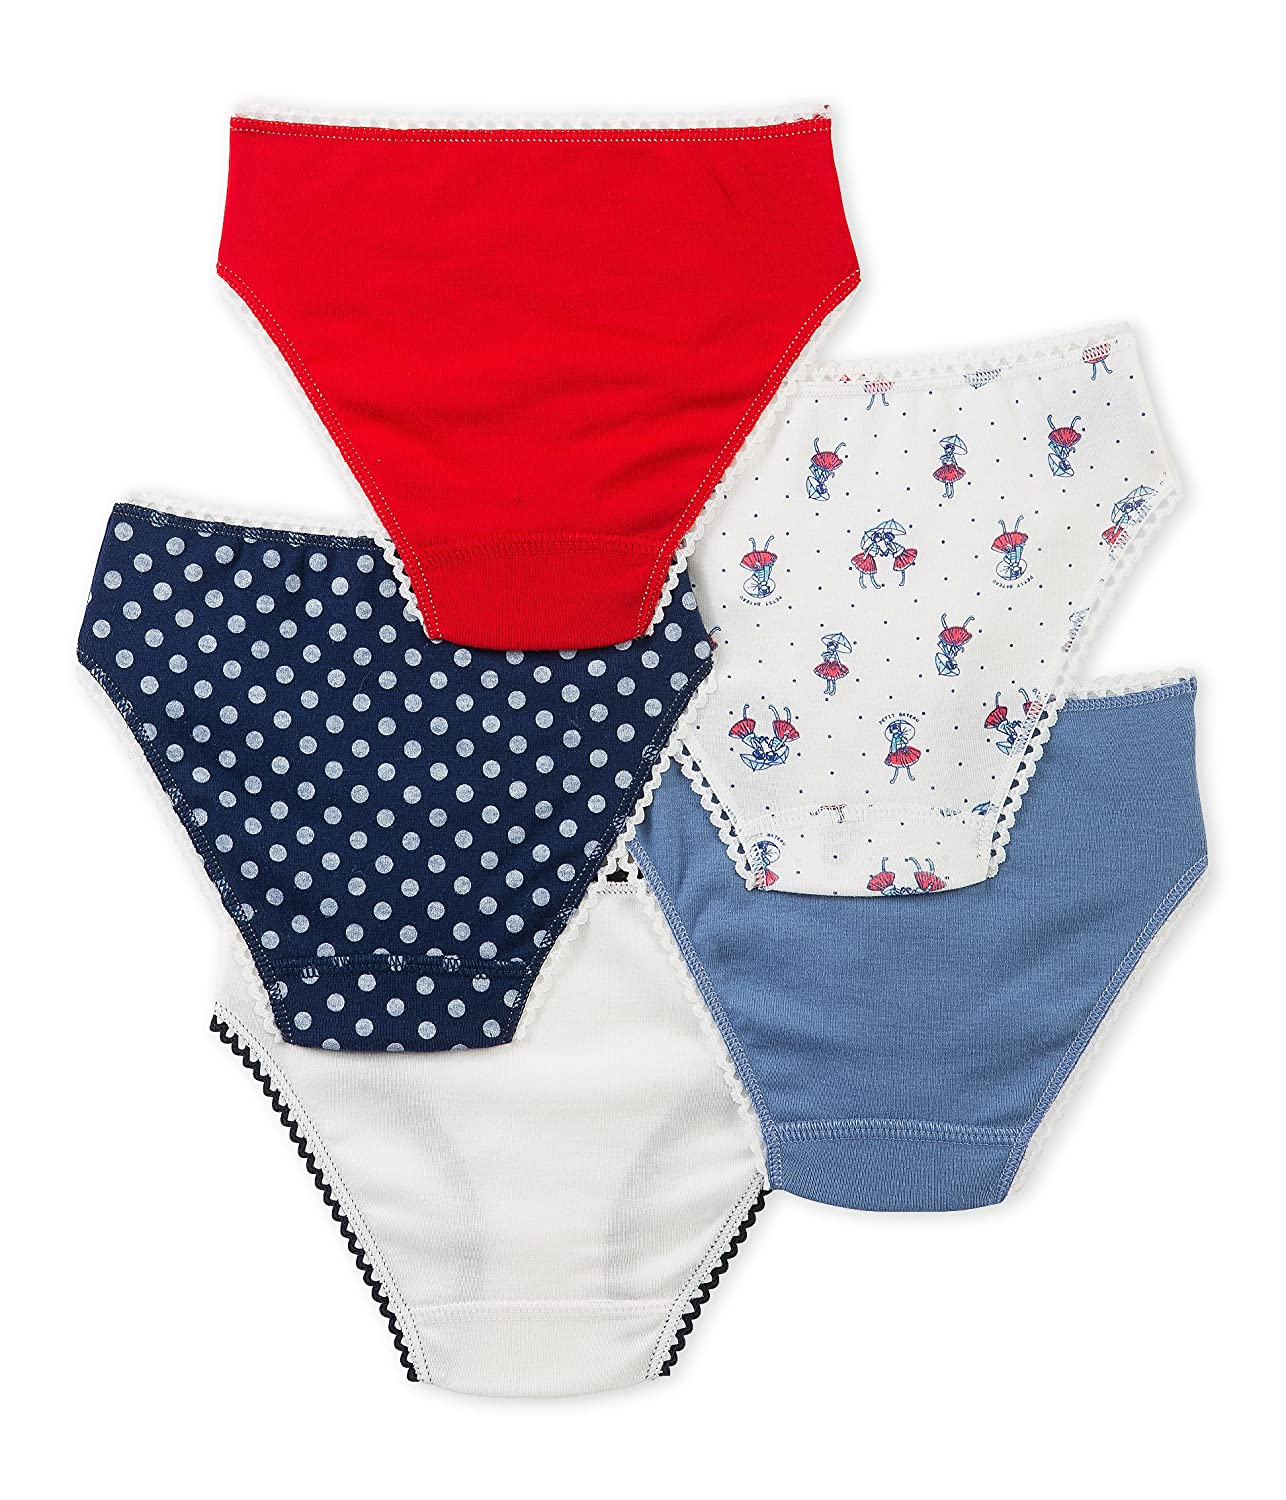 Petit Bateau Girls 5 Pack Solid and Printed Underwear